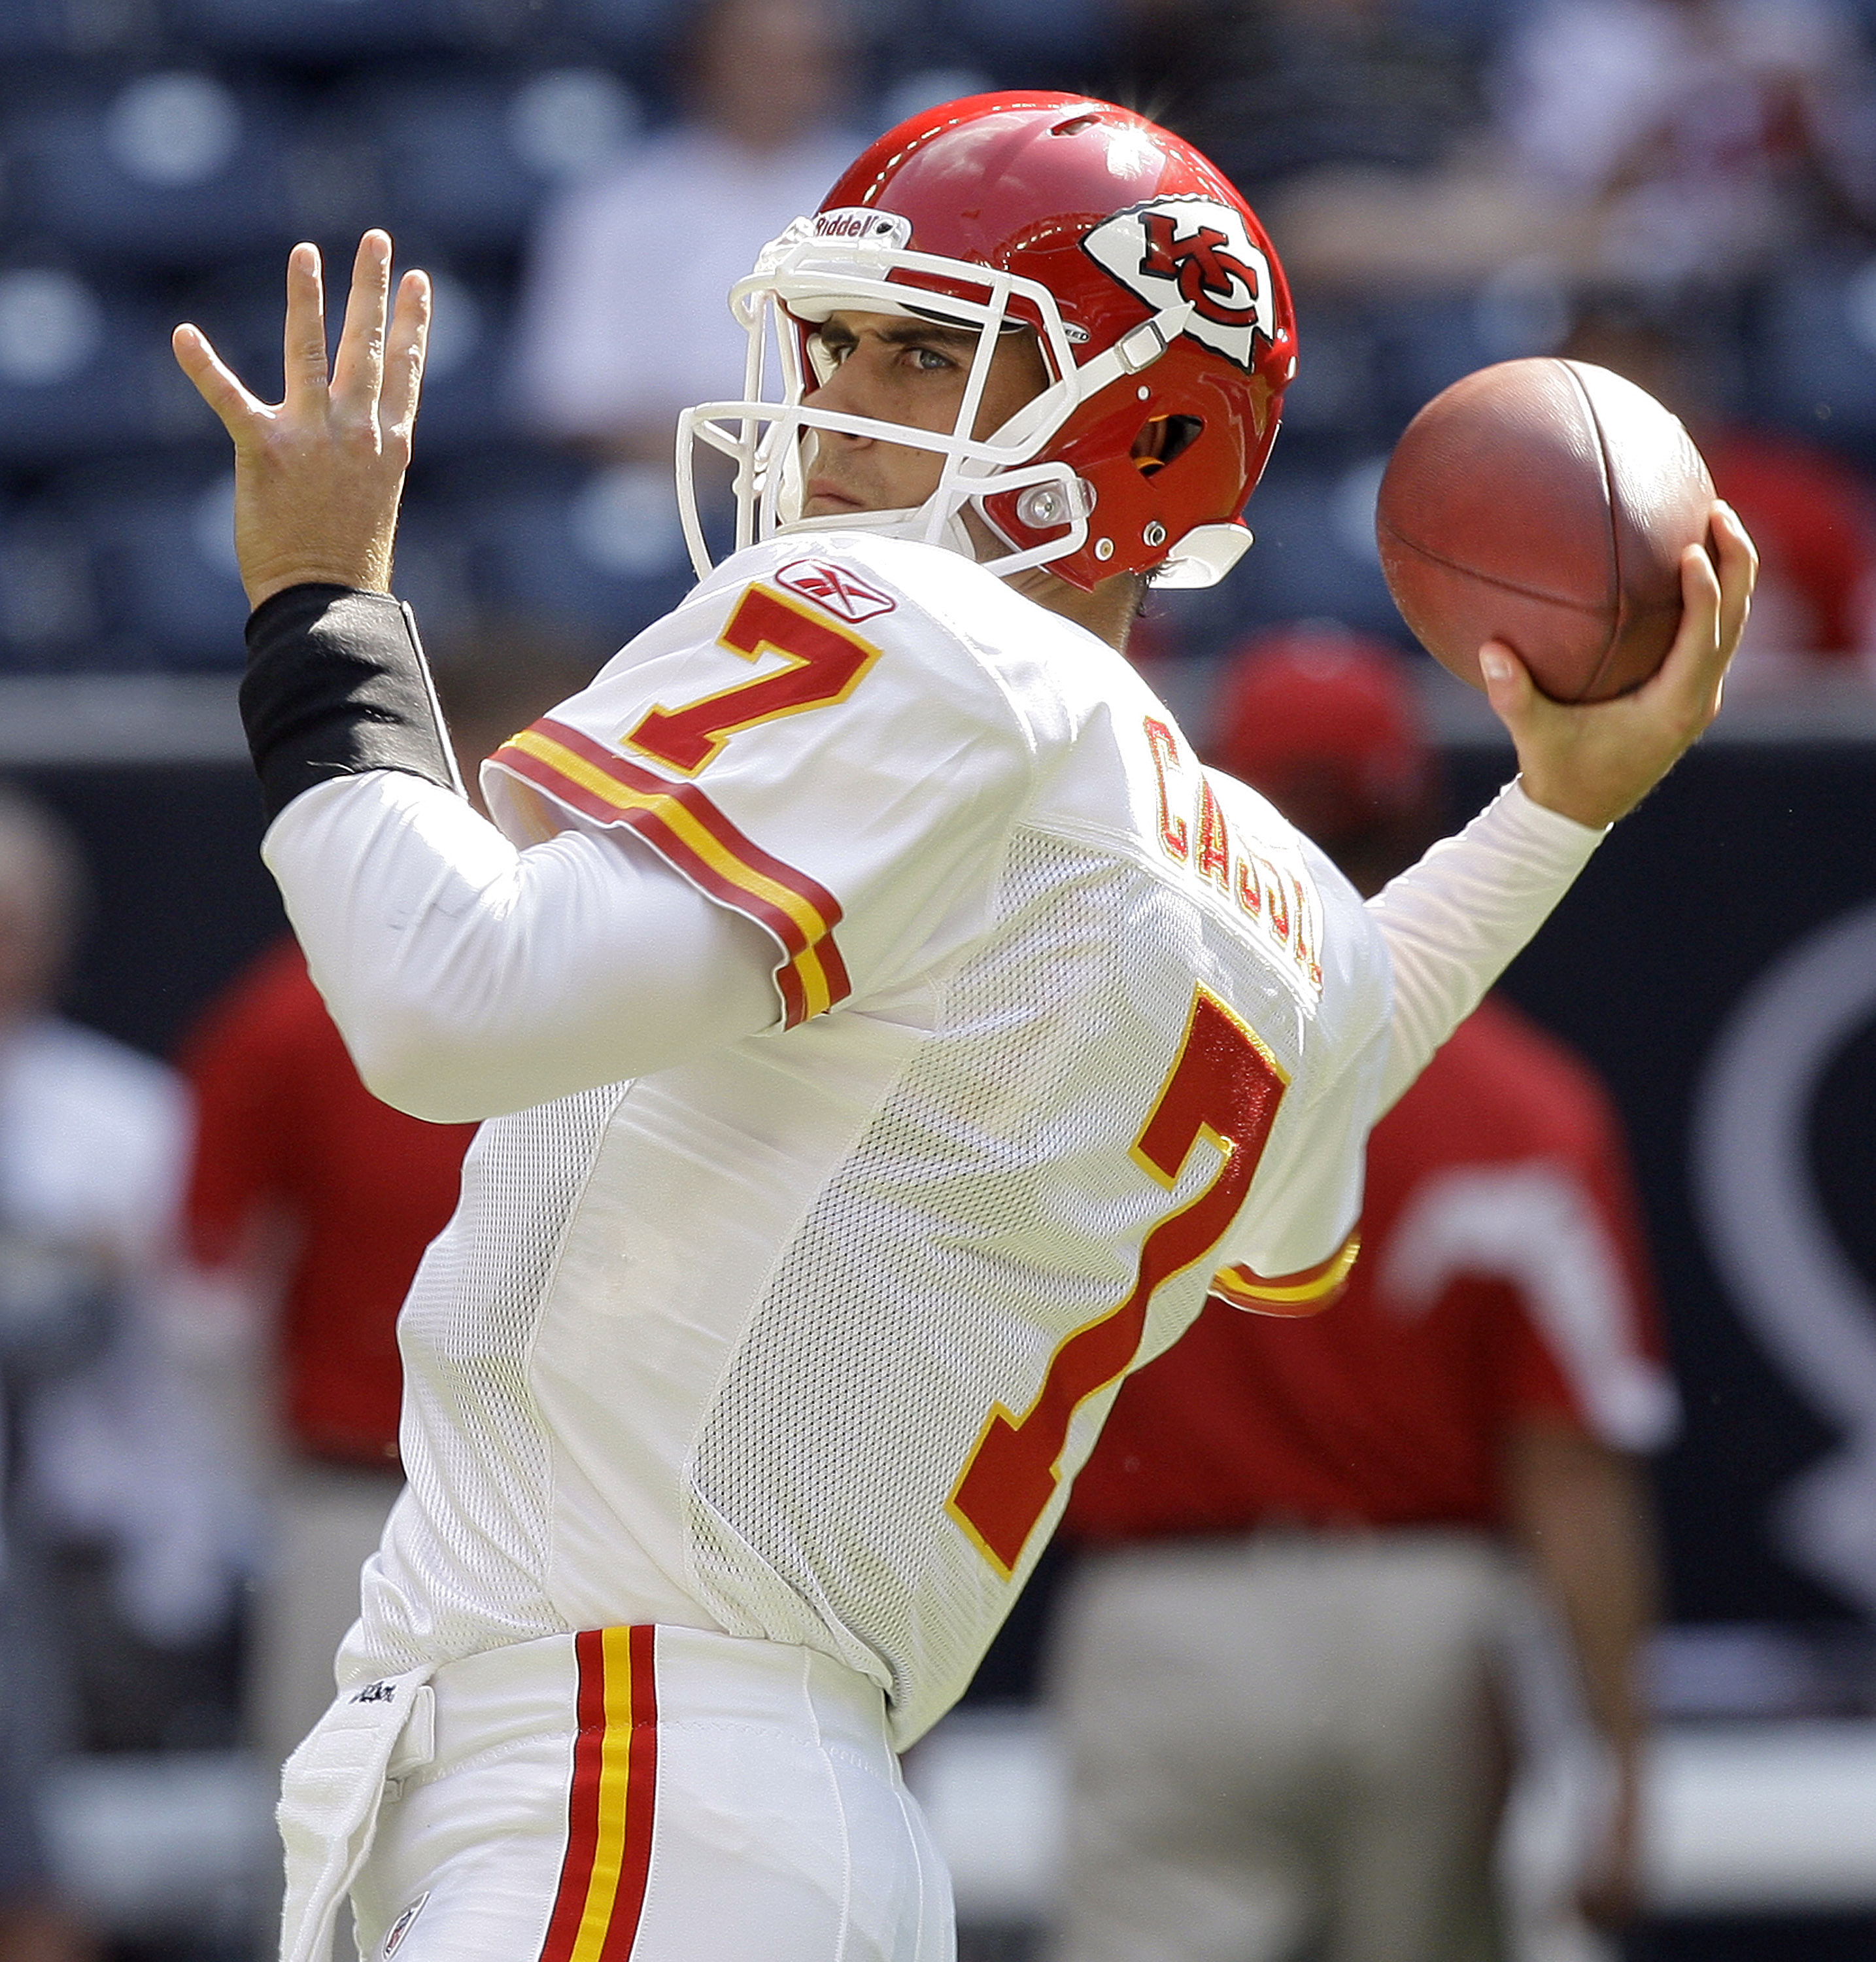 HOUSTON - OCTOBER 17:  Quarterback Matt Cassel #7 of the Kansas City Chiefs throws passes during warm ups before playing the Houston Texans at Reliant Stadium on October 17, 2010 in Houston, Texas.  (Photo by Bob Levey/Getty Images)